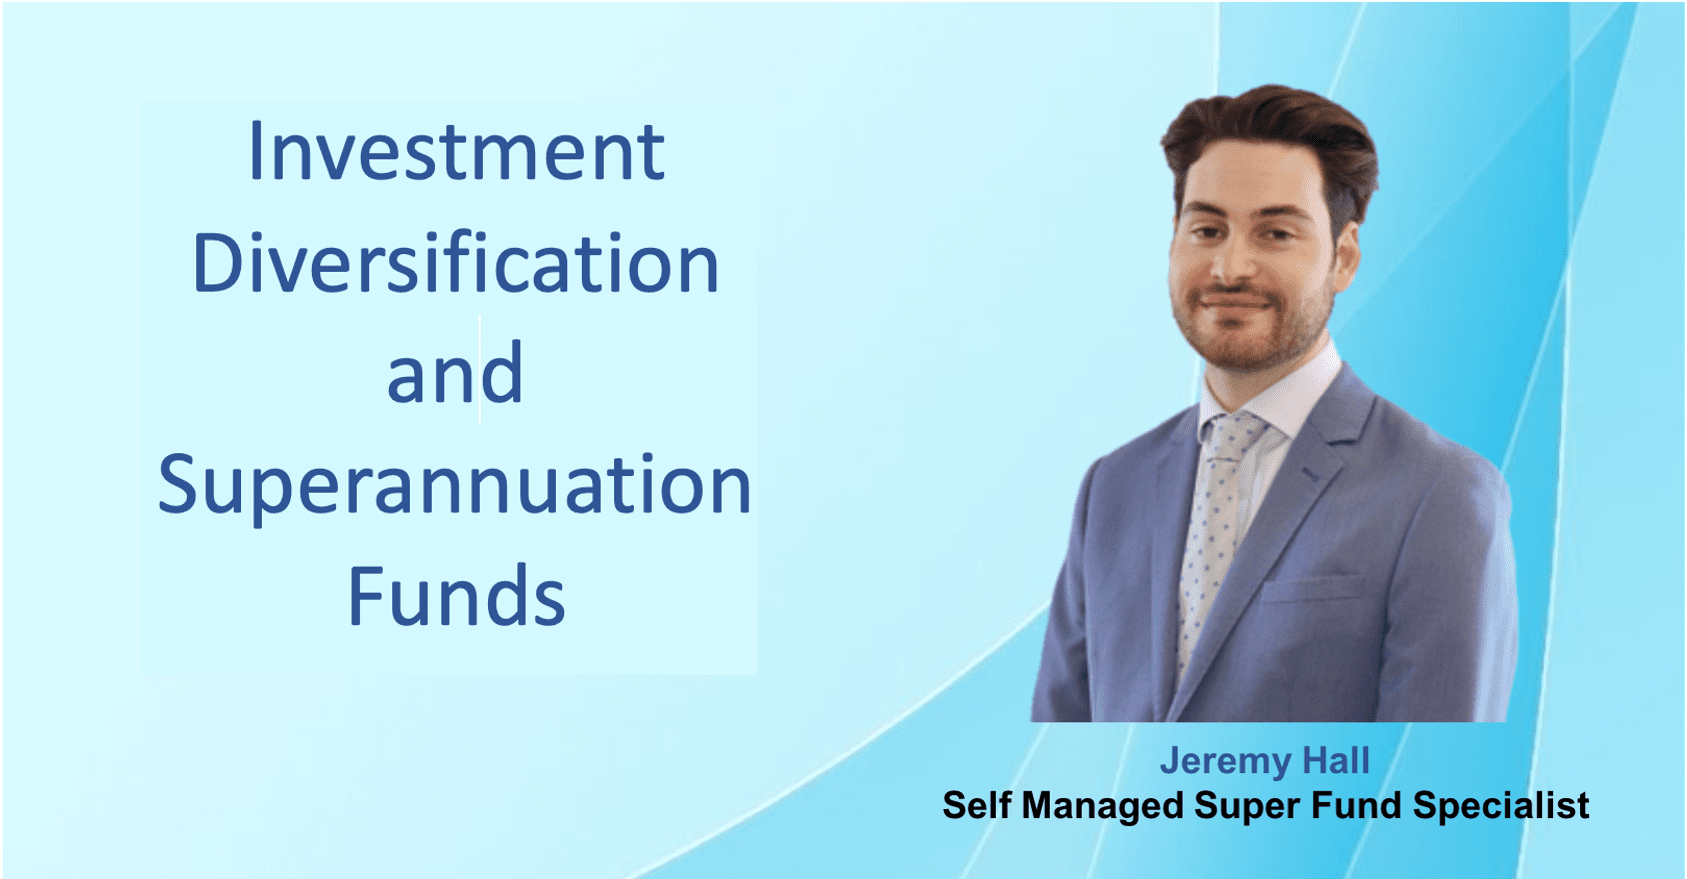 Investment Diversification and Superannuation Funds